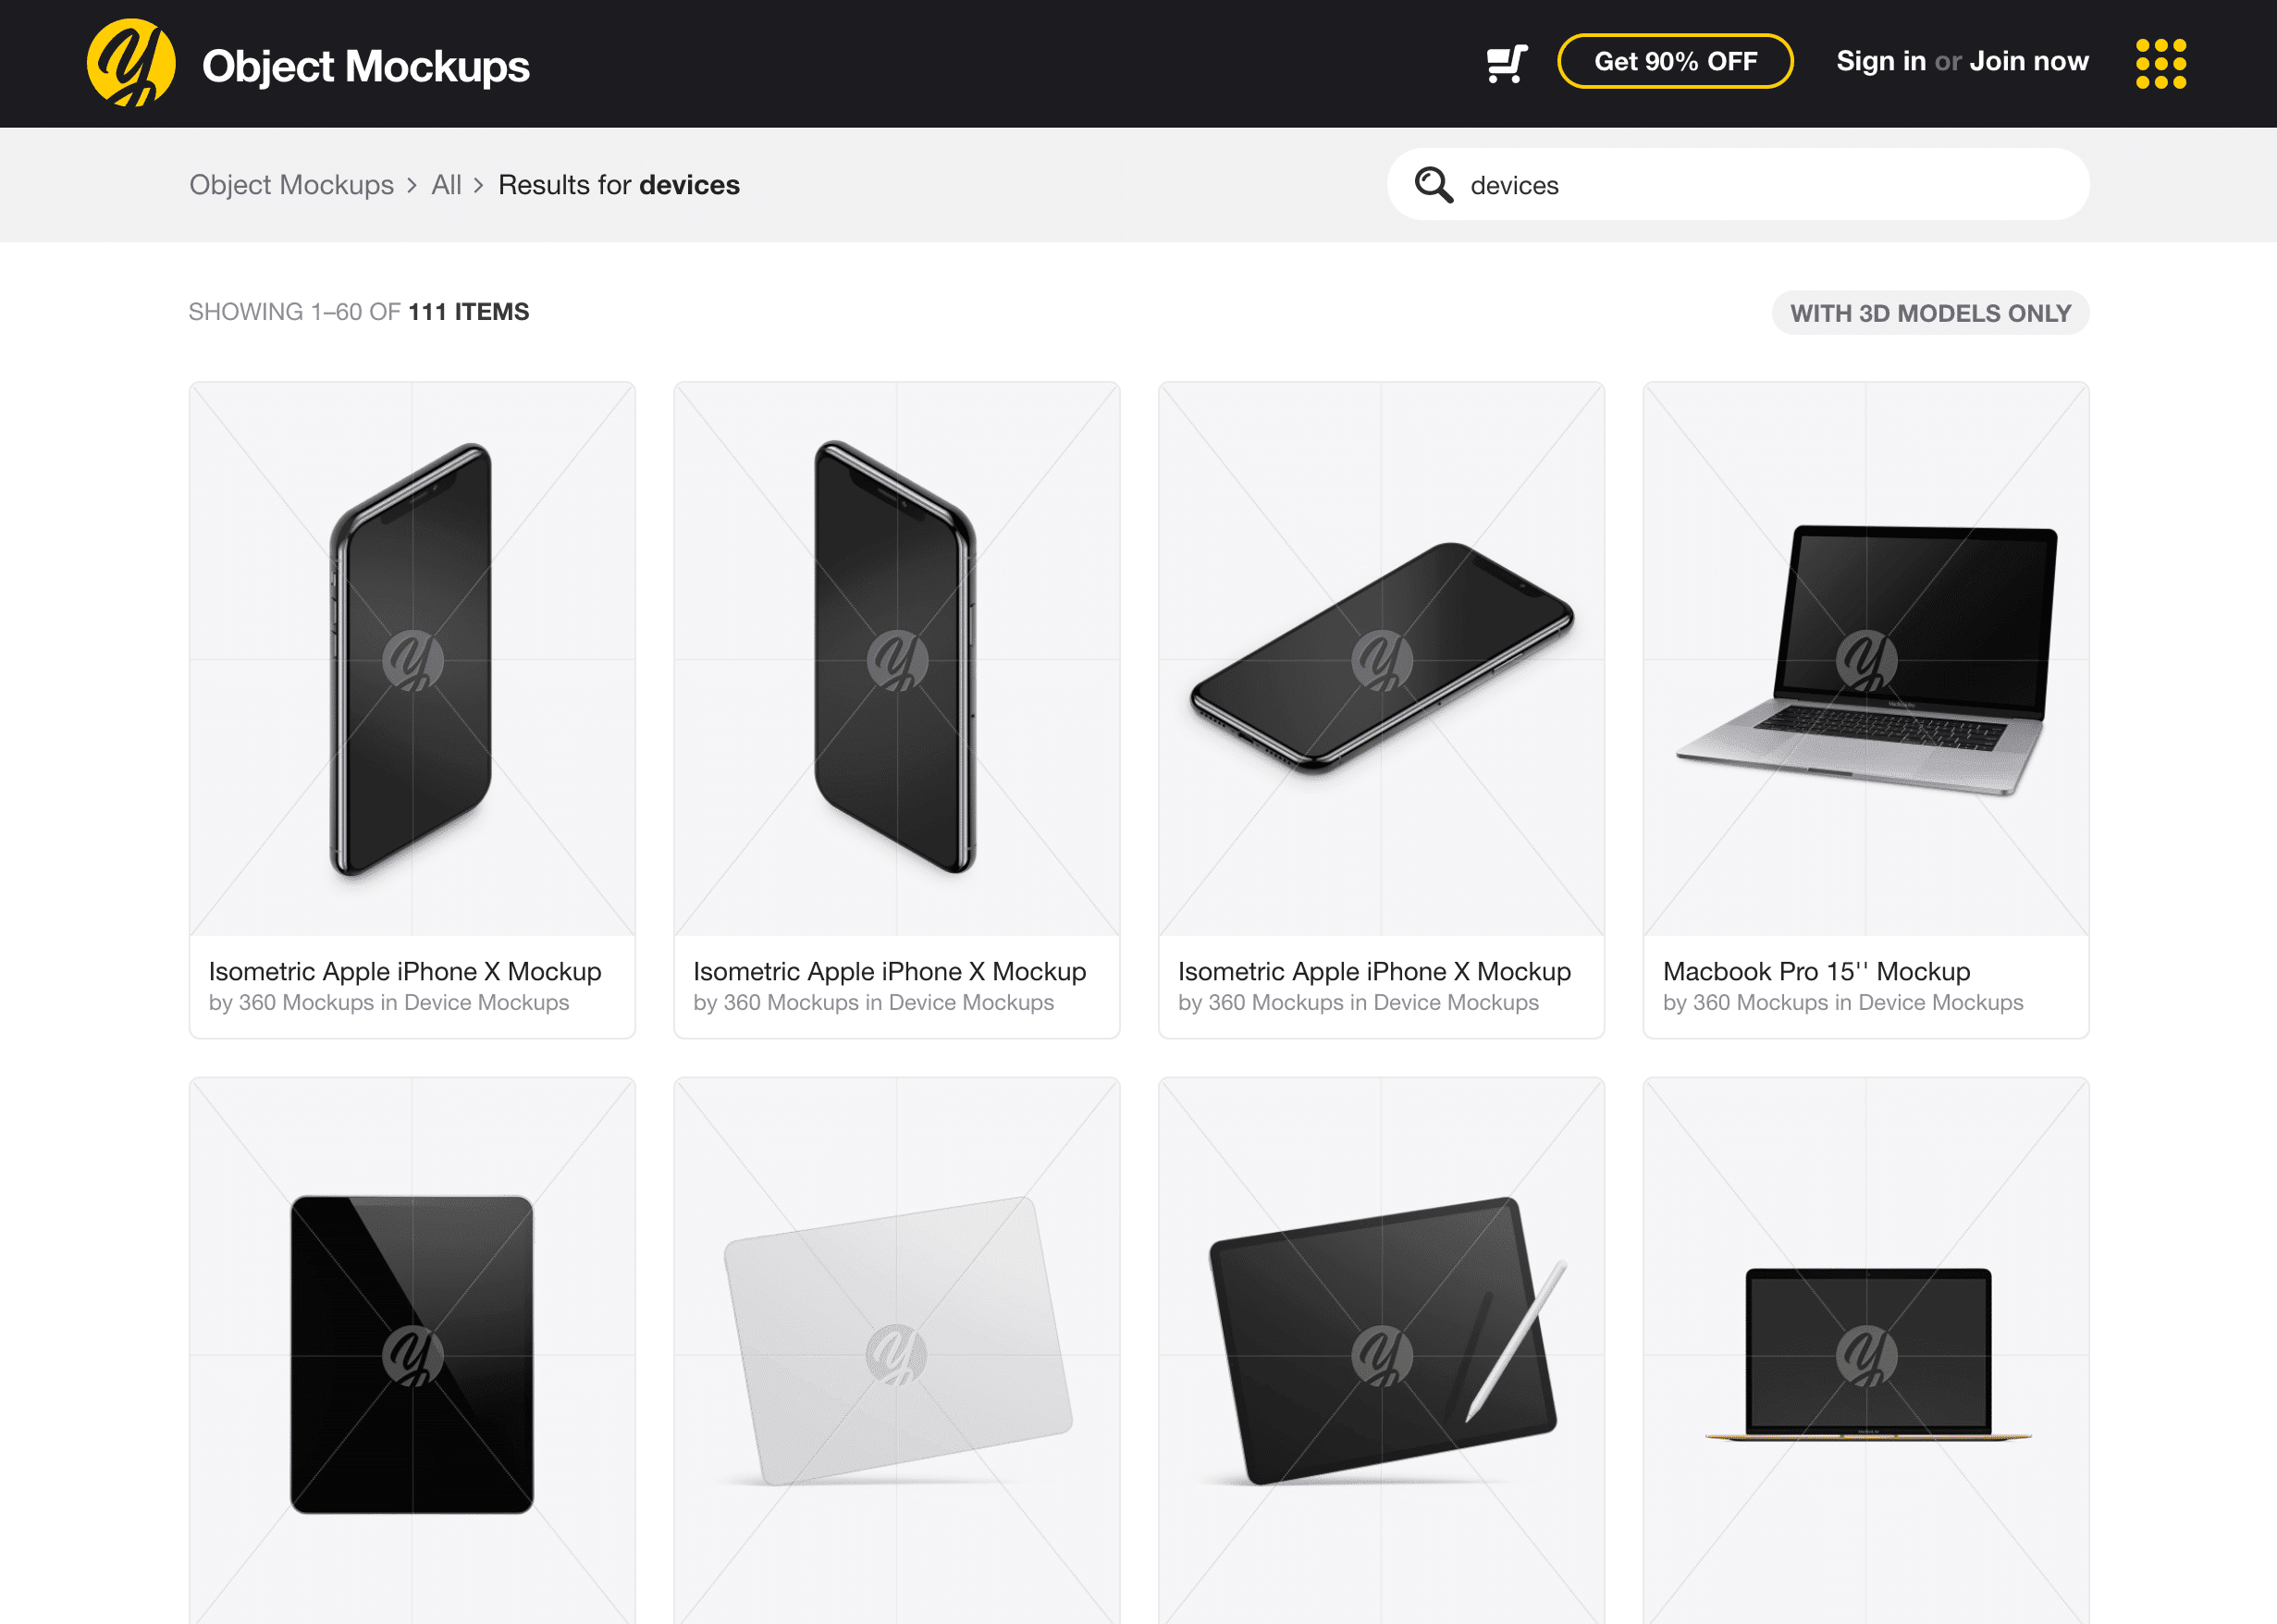 Object Mockups by Yellow Images